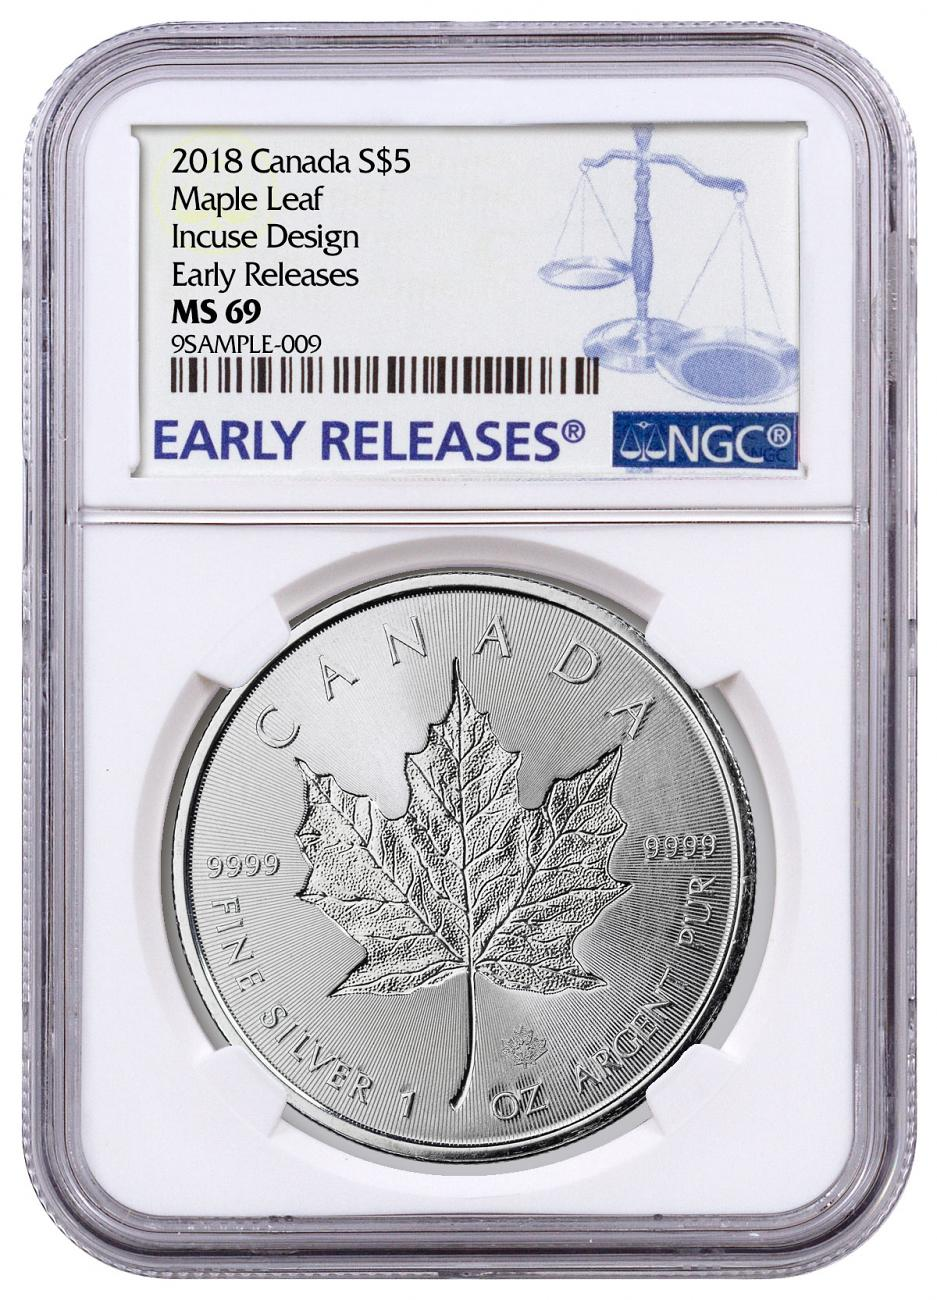 2018 Canada 1 oz Silver Maple Leaf - Incuse $5 Coin NGC MS69 ER